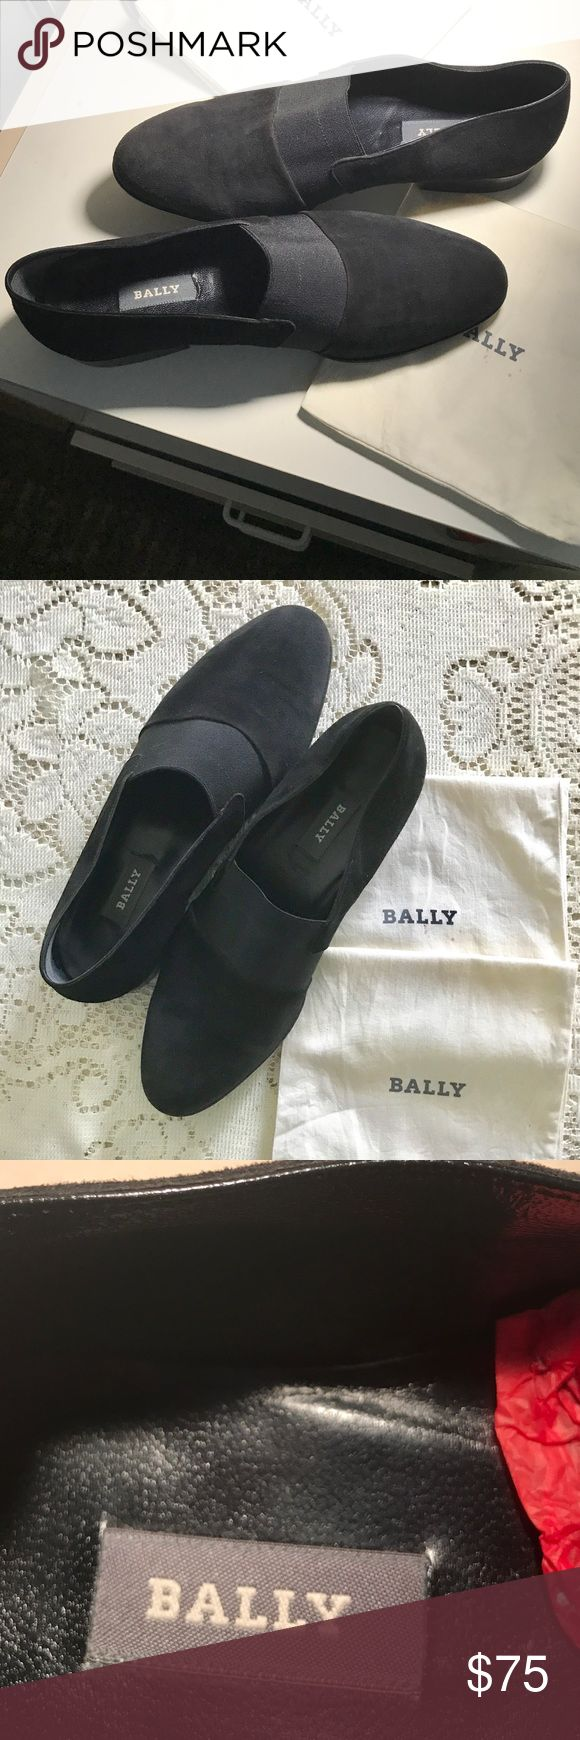 Bally suede tuxedo shoes for men Pre-owned excellent condition used for one event. Jet black, light wear on soles. Suede with a stretchy band across top. No box, but 2 dust bags are included Bally Shoes Loafers & Slip-Ons